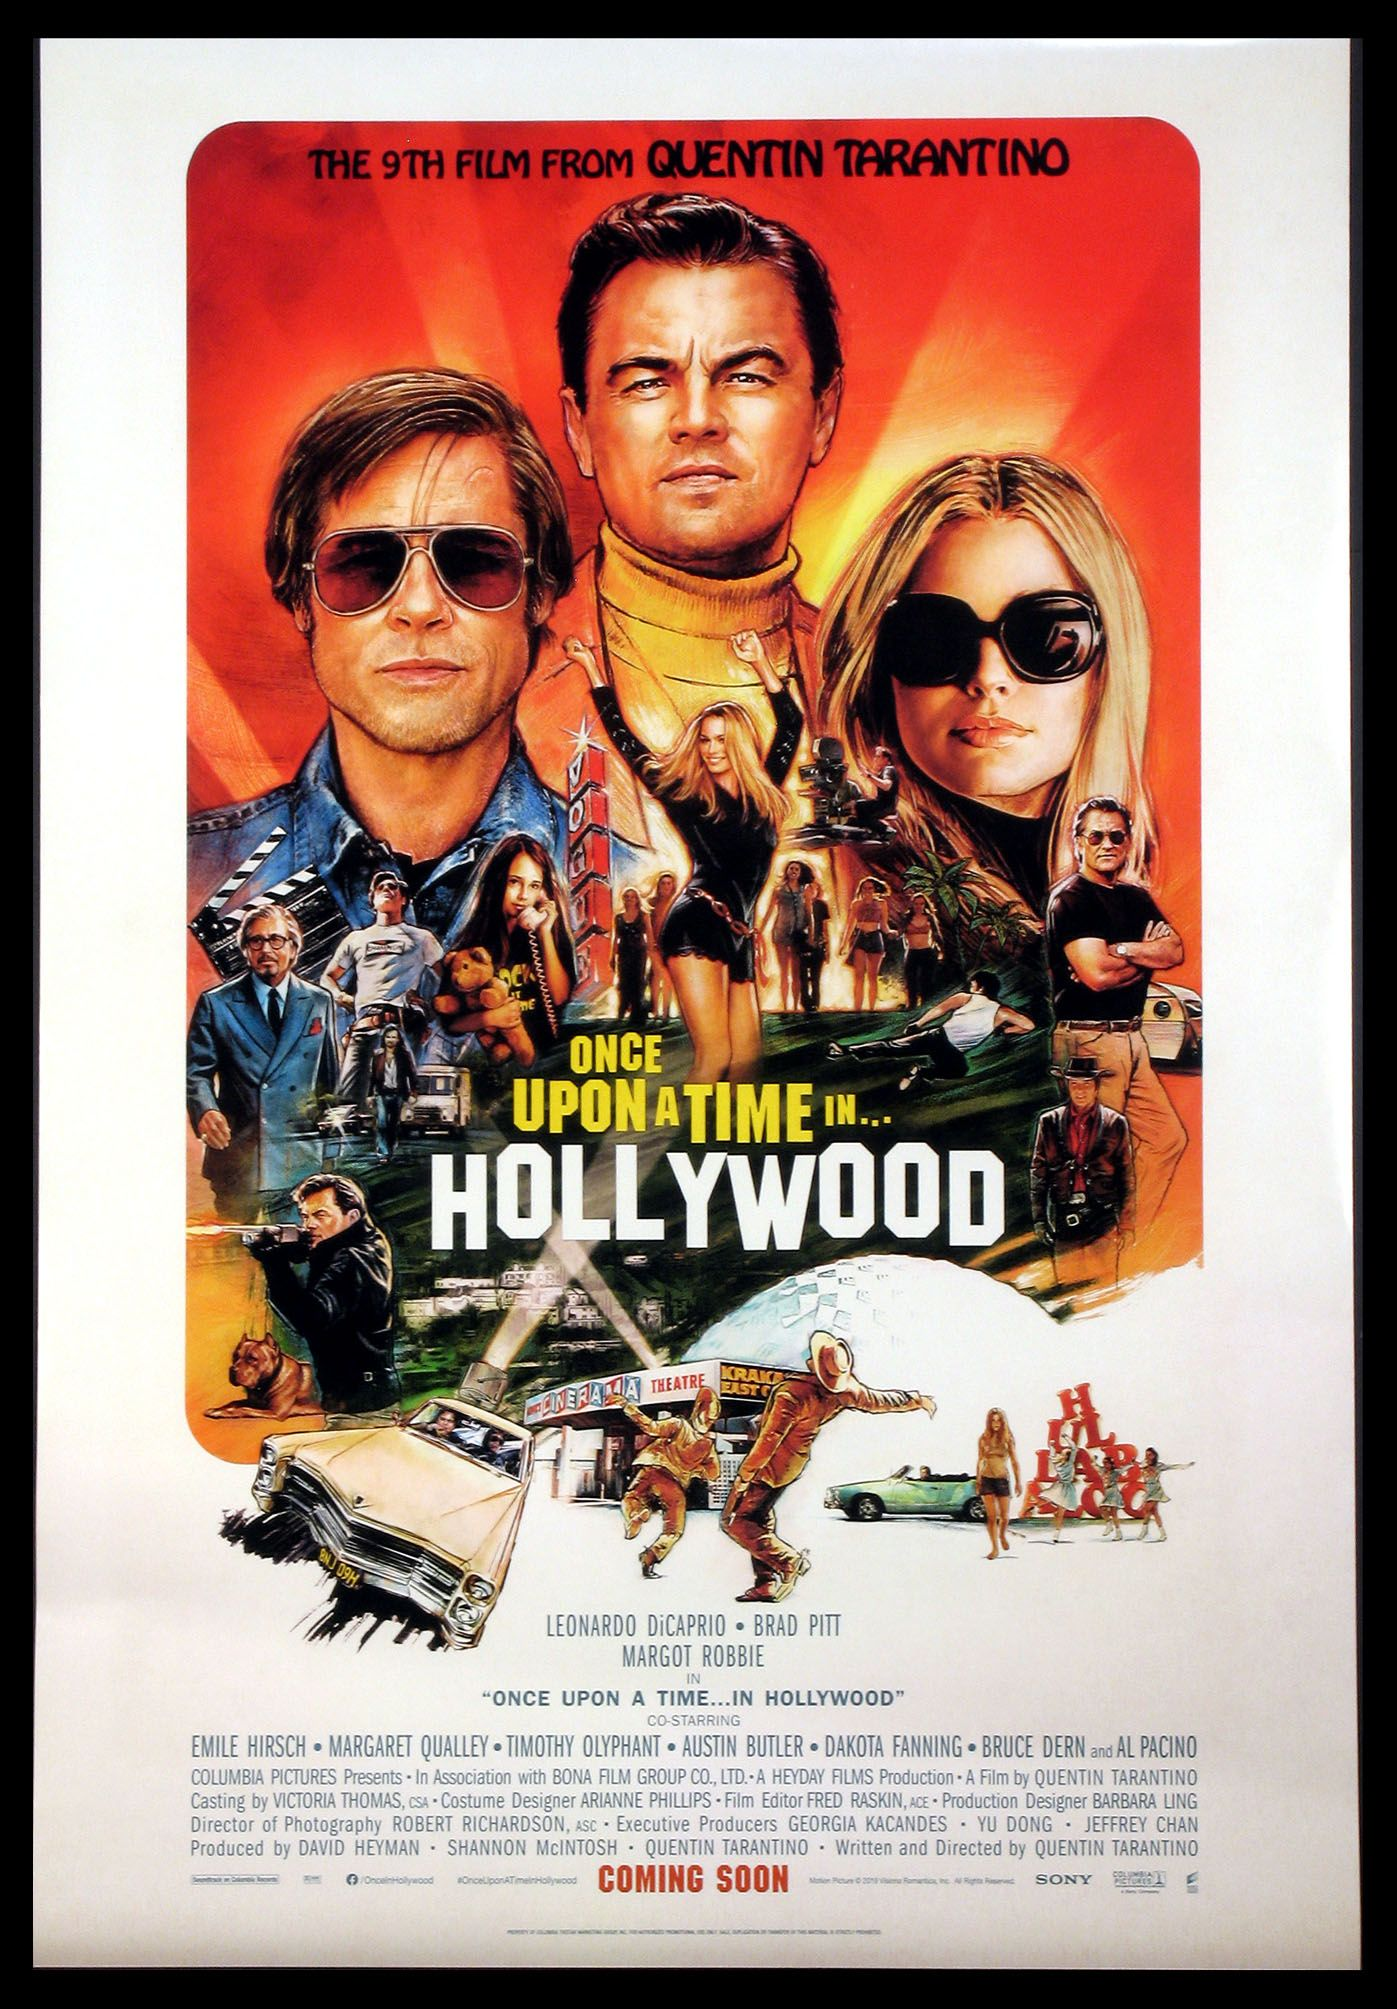 Once Upon A Time In Hollywood 2019 Original One Sheet Size 27x40 Movie Poster In Hollywood Quentin Tarantino Once Upon A Time